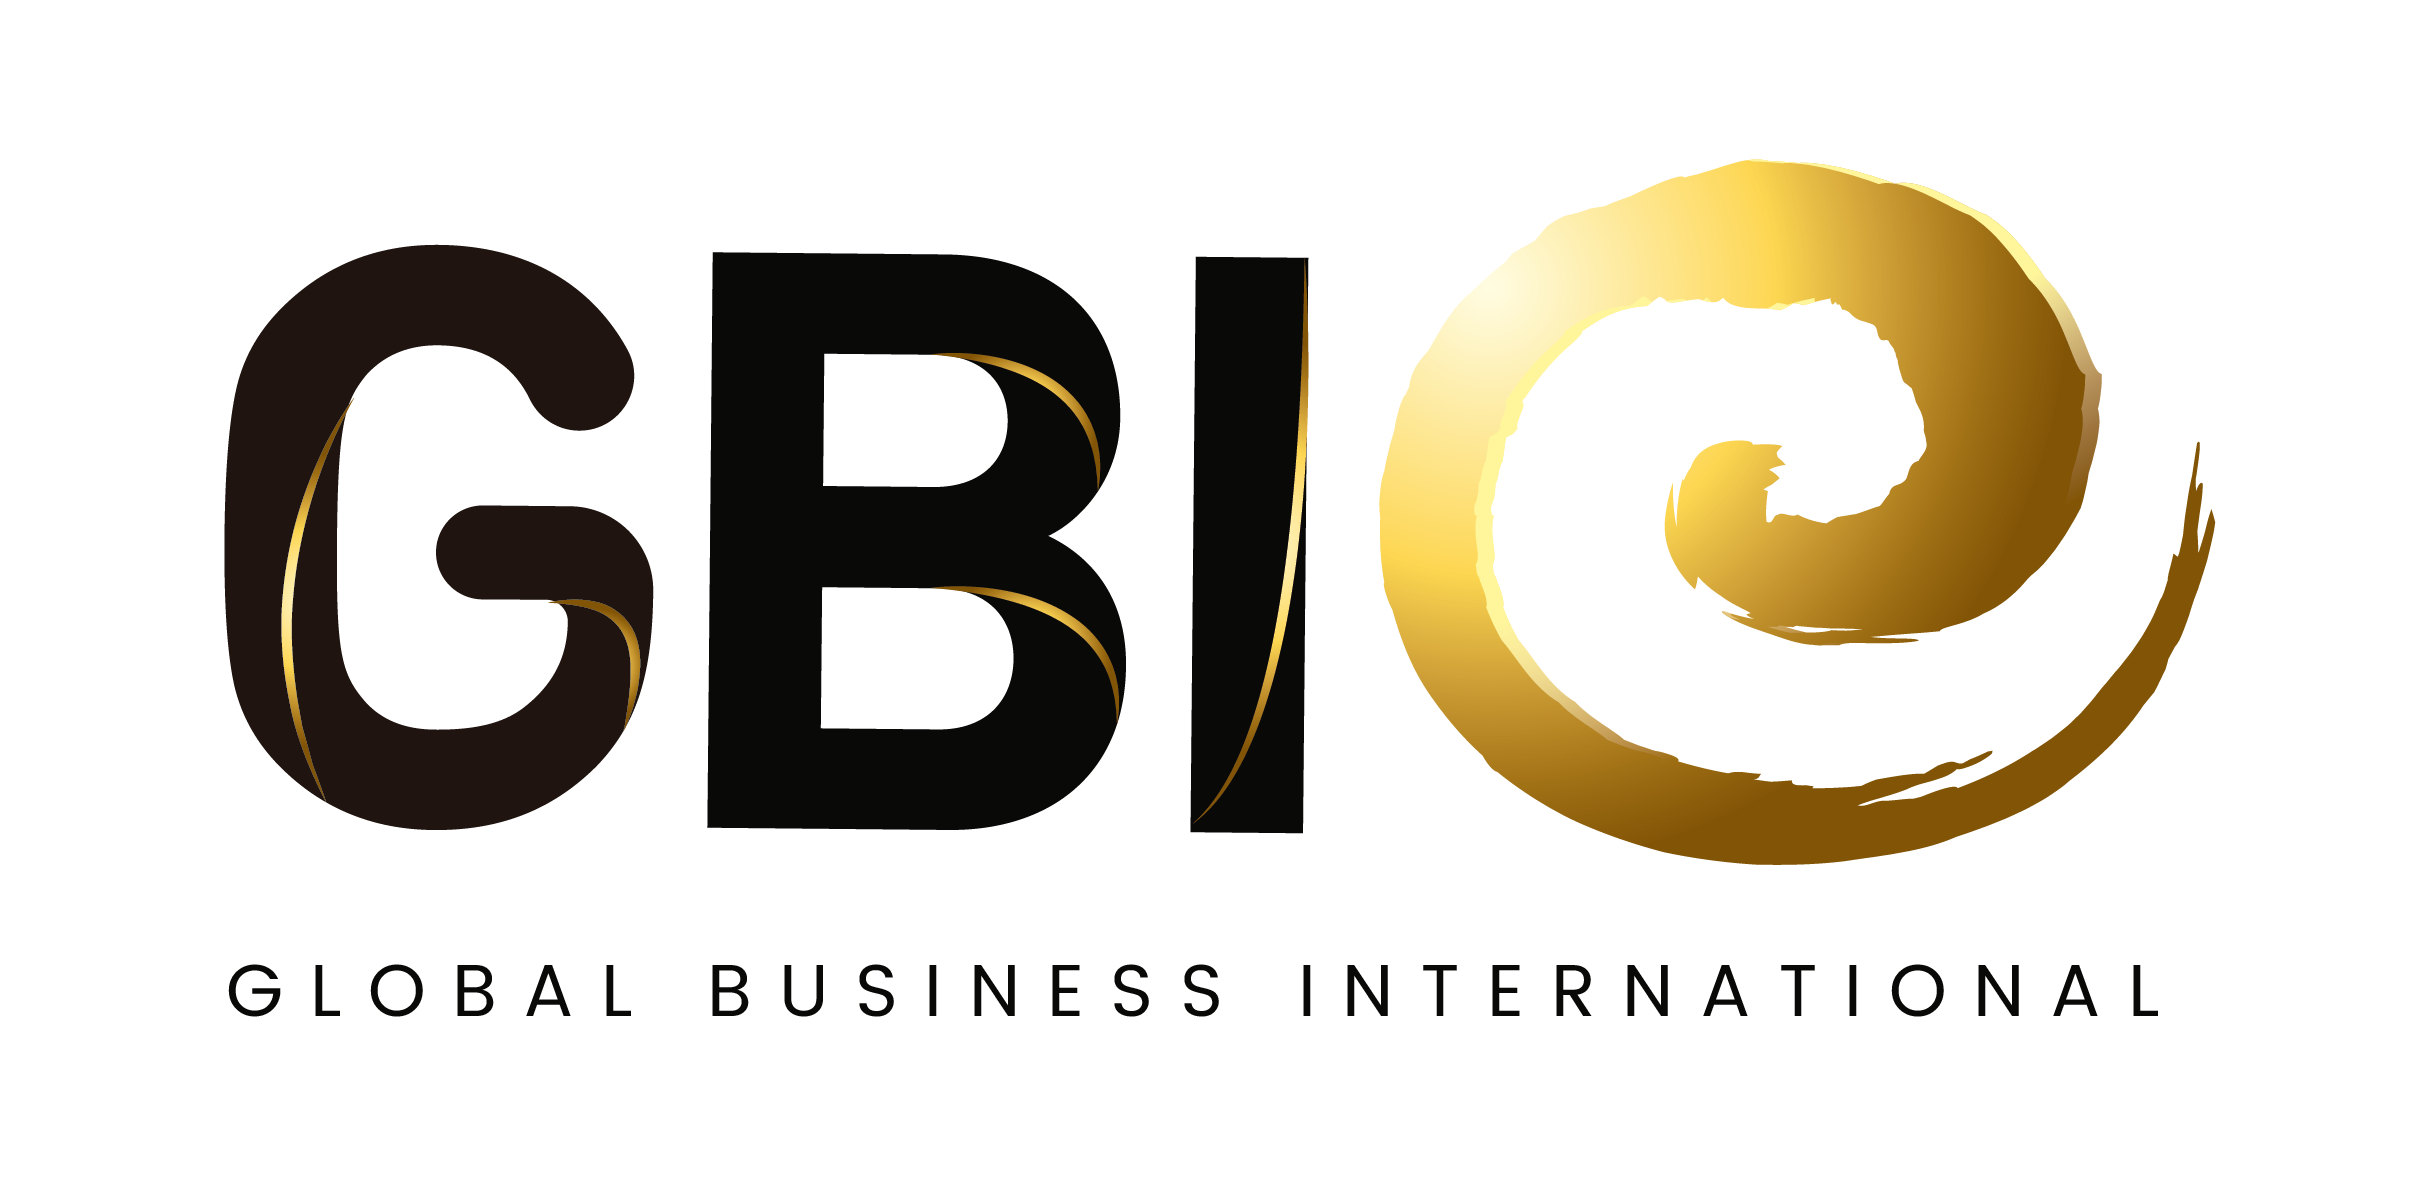 Global Business International